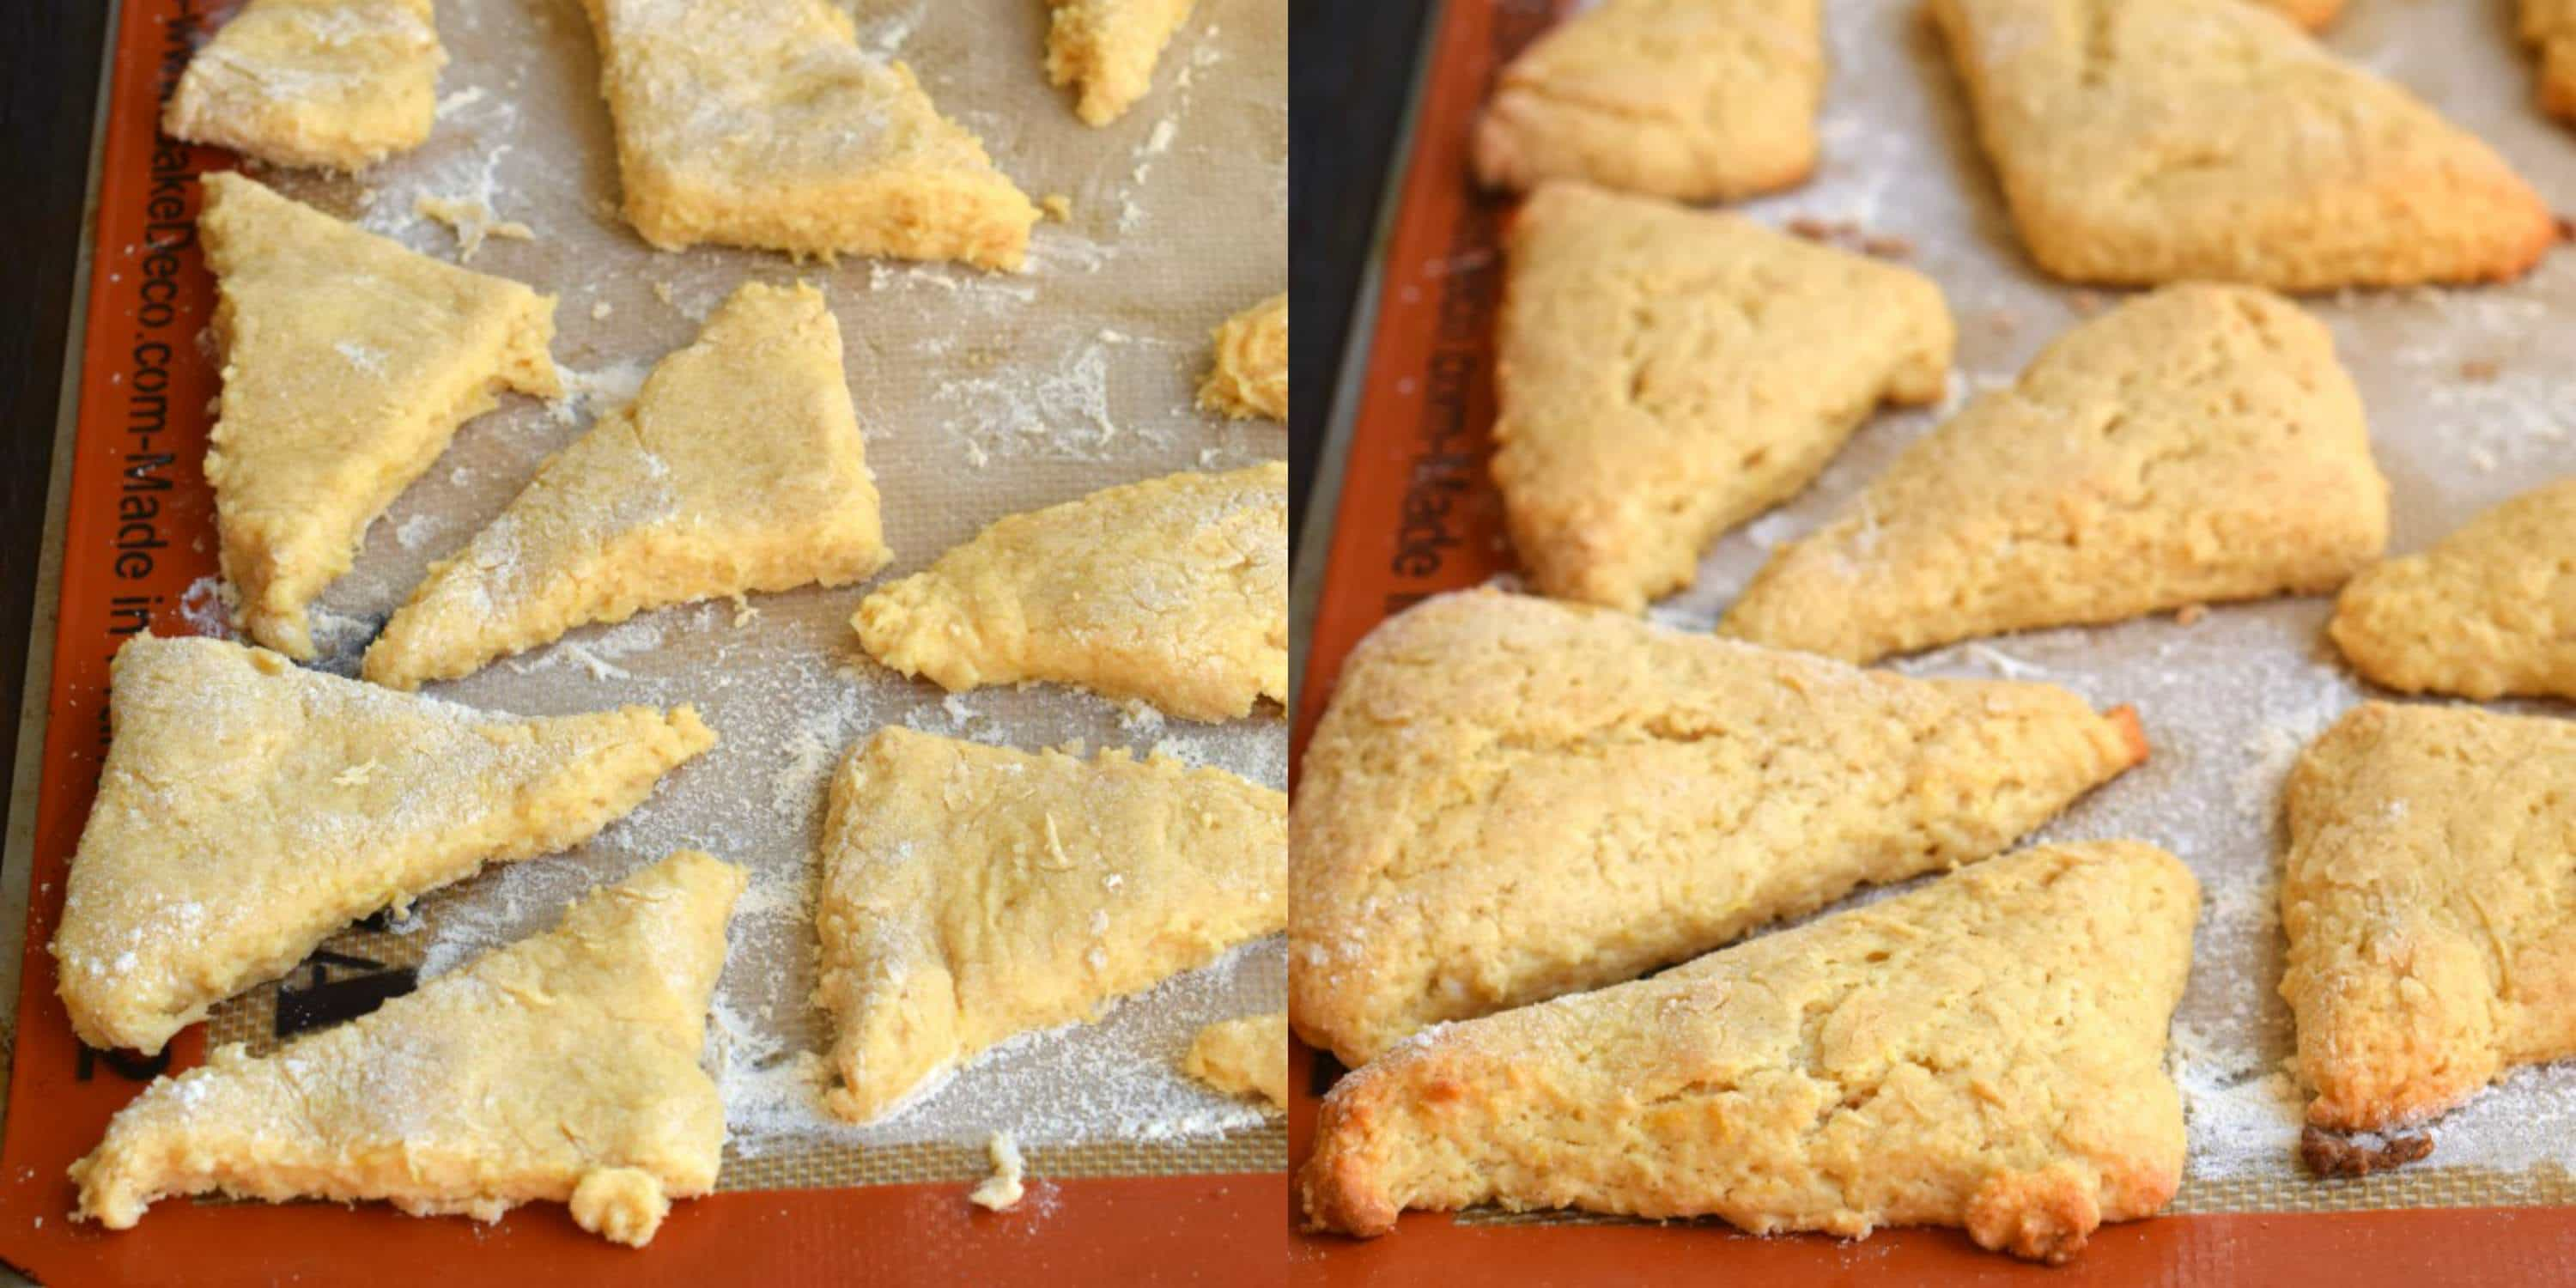 Step by step photos for making lemon scones.